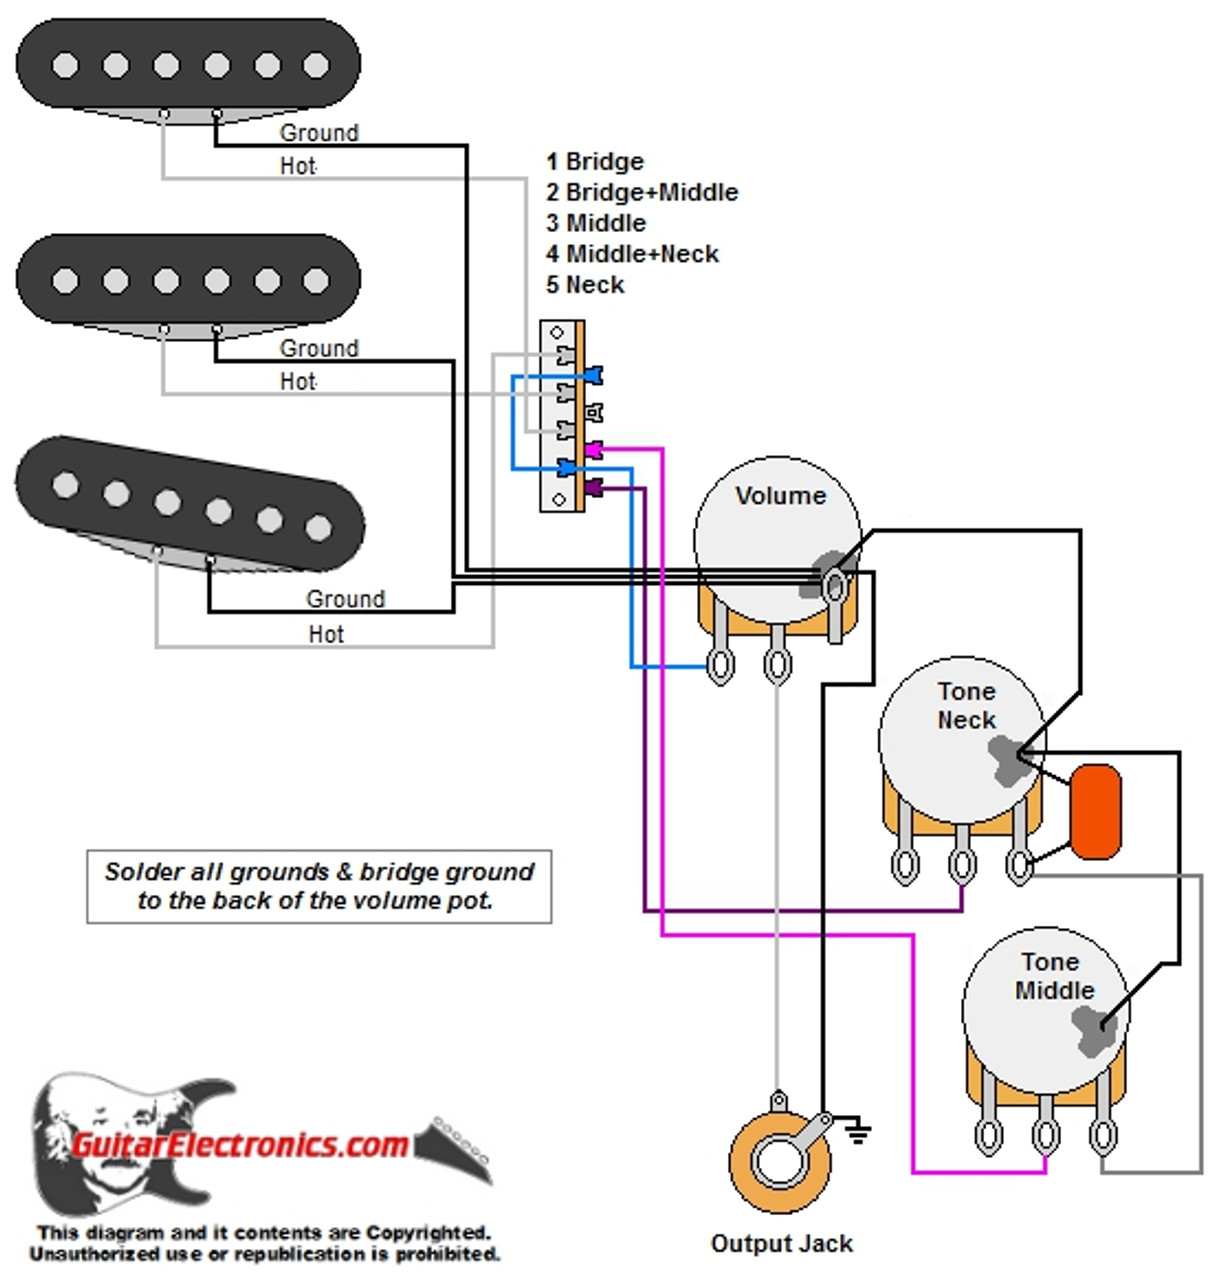 hight resolution of fender strat wire diagram wiring diagram numberstrat style guitar wiring diagram fender stratocaster s1 wiring diagram